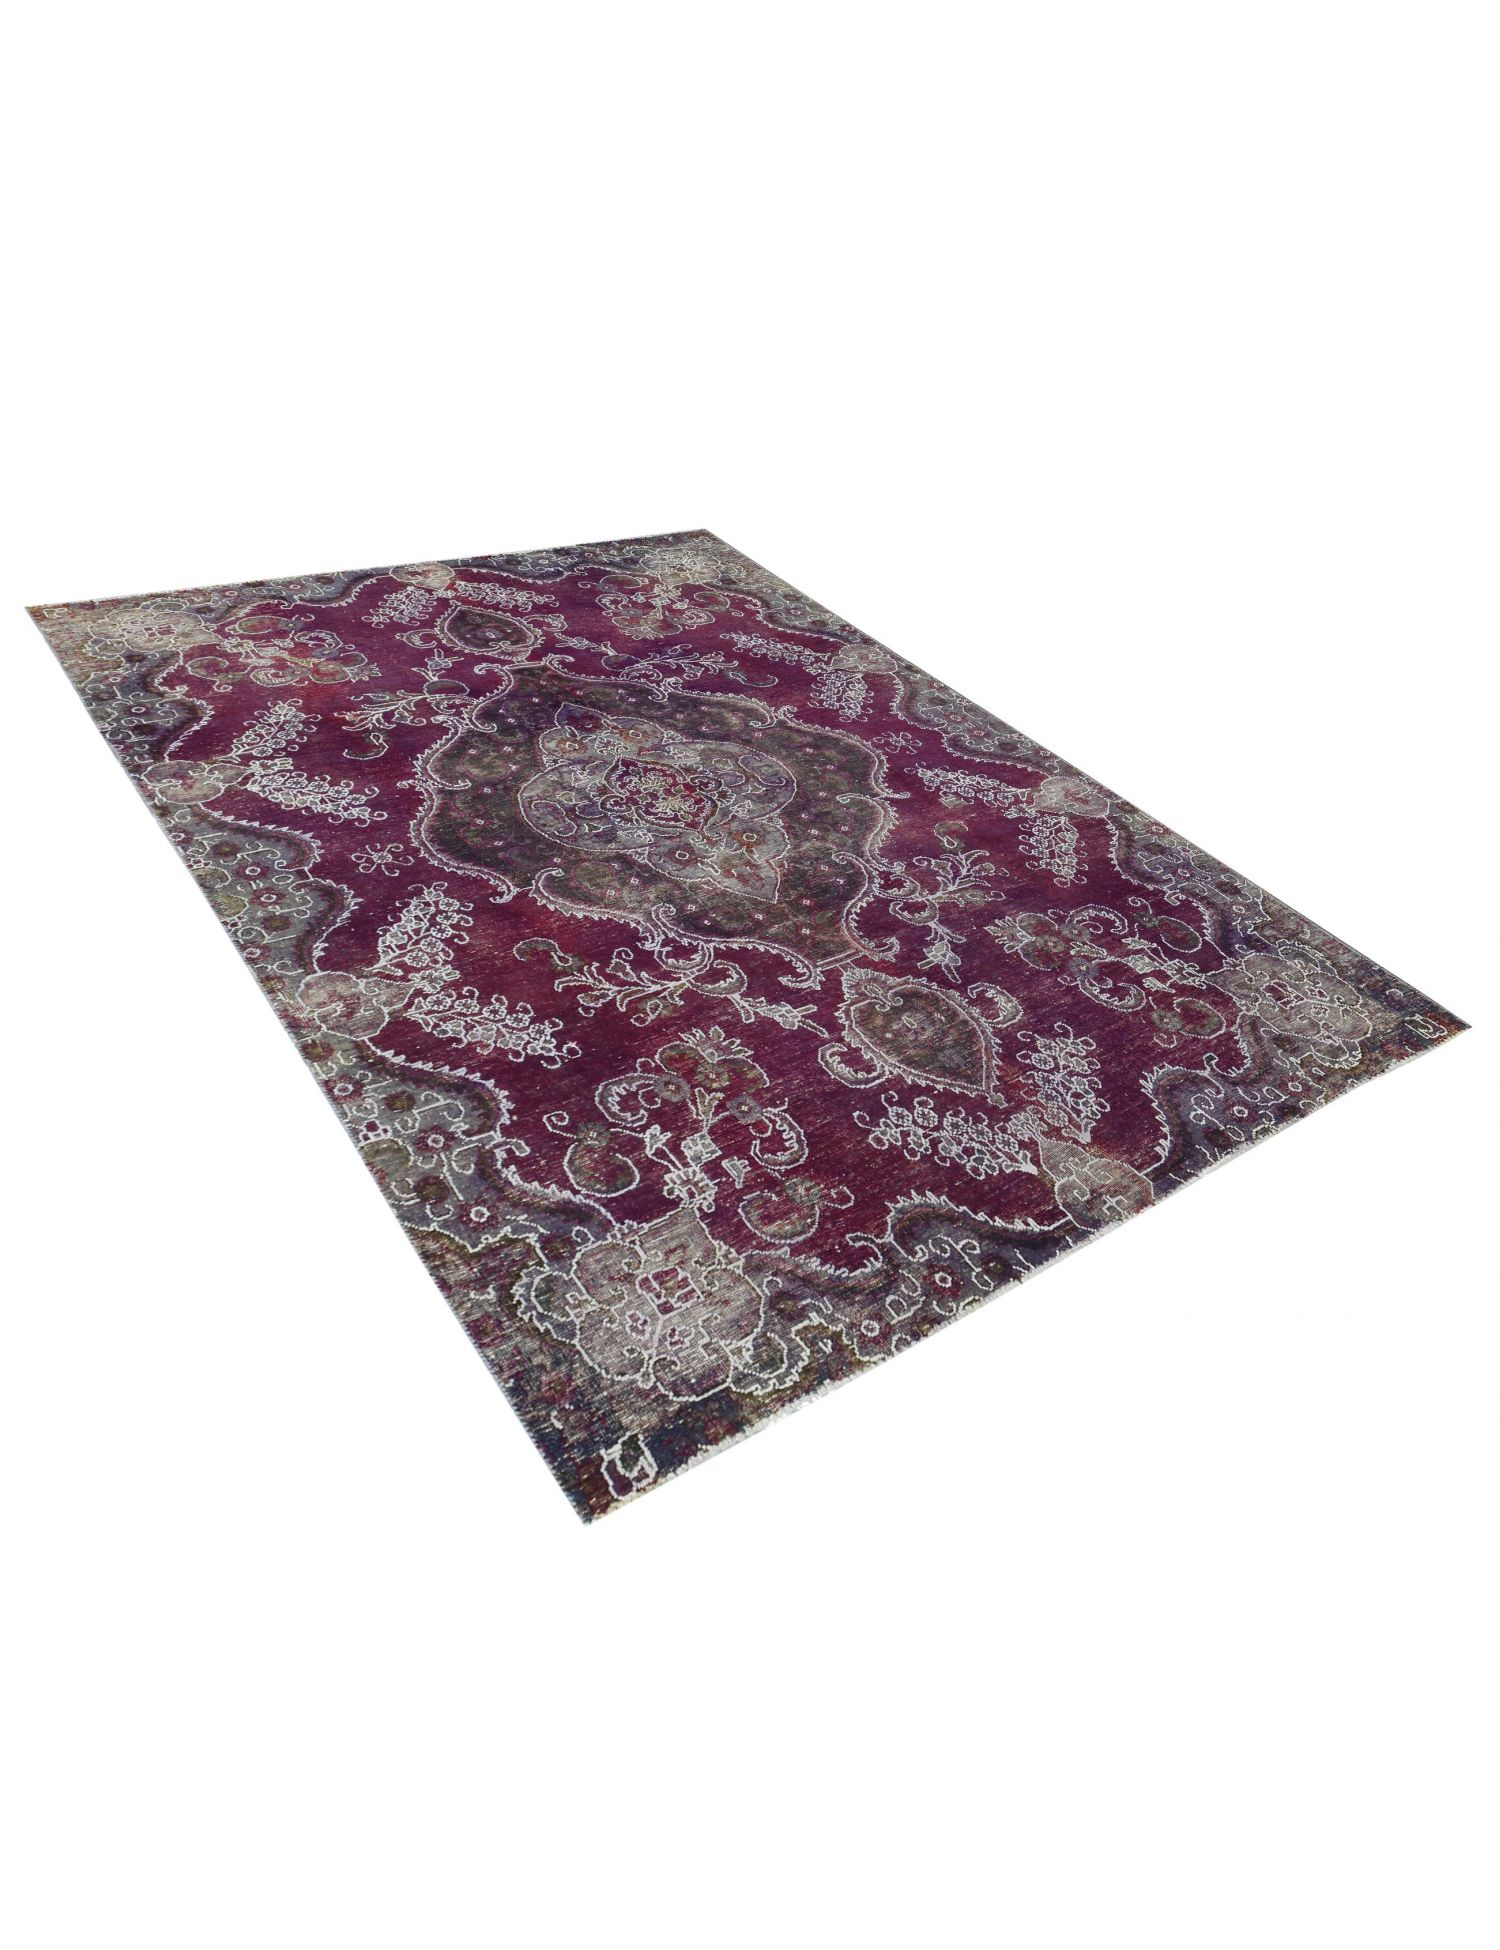 Vintage Carpet  purple <br/>300 x 200 cm